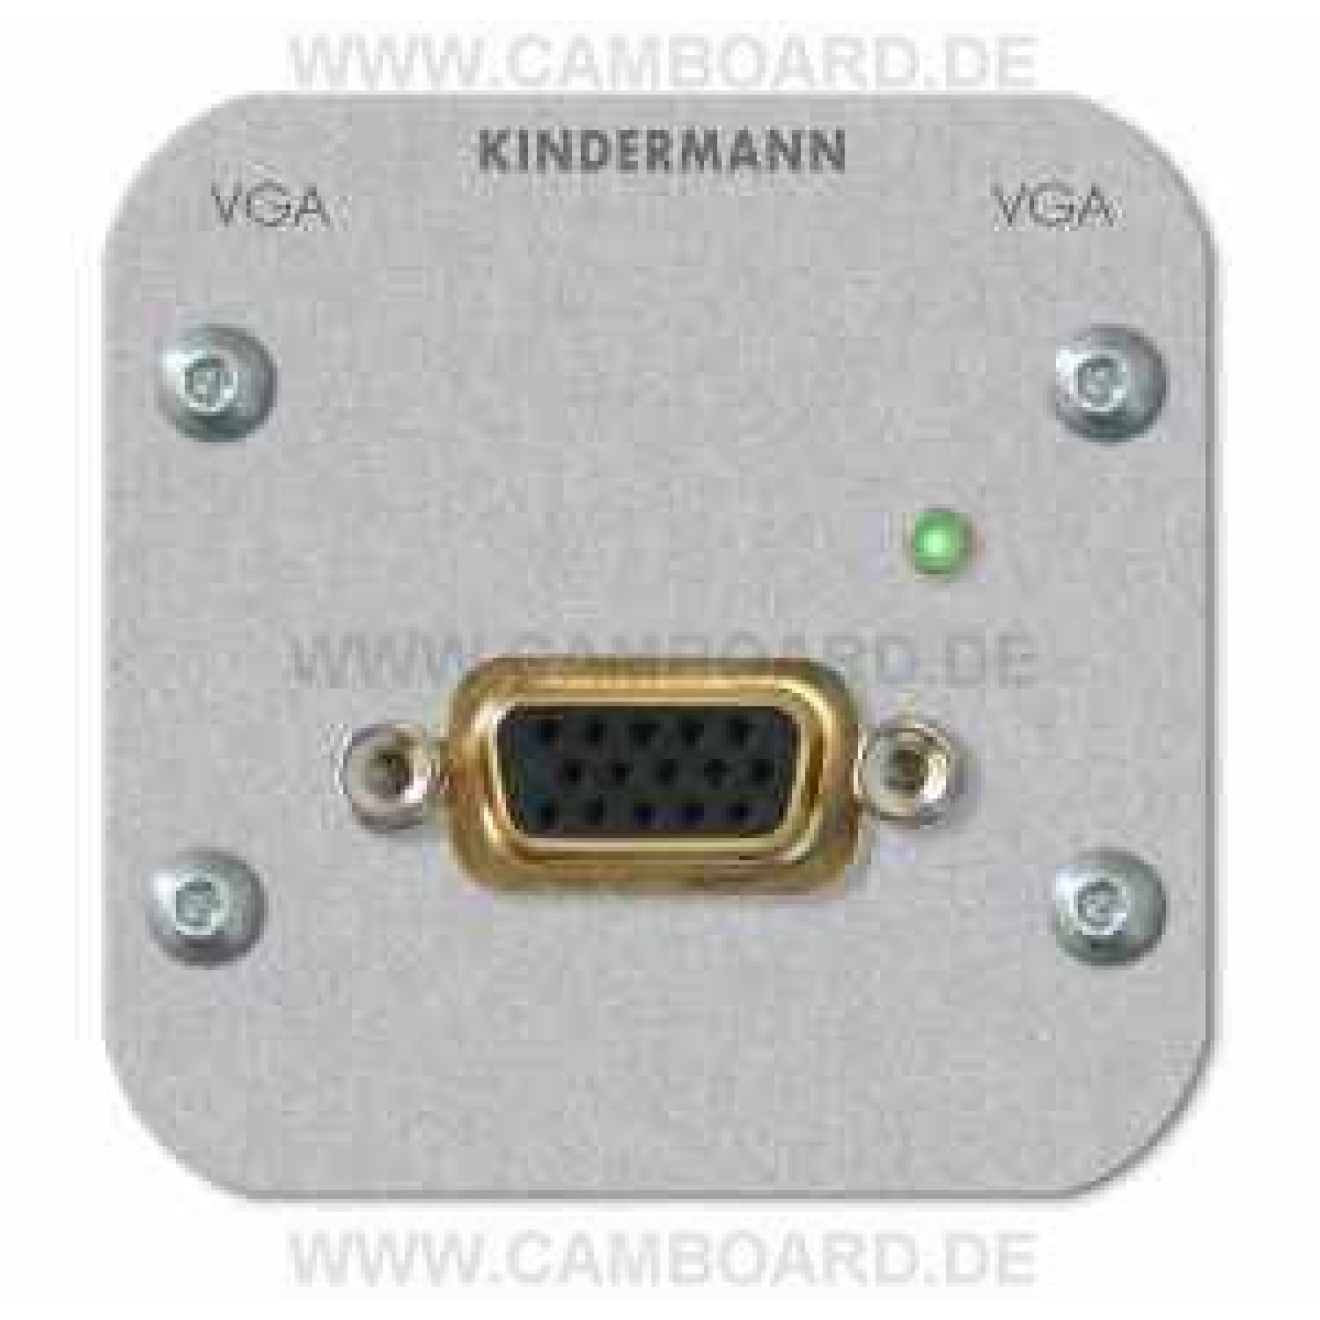 Kindermann VGA Blende V